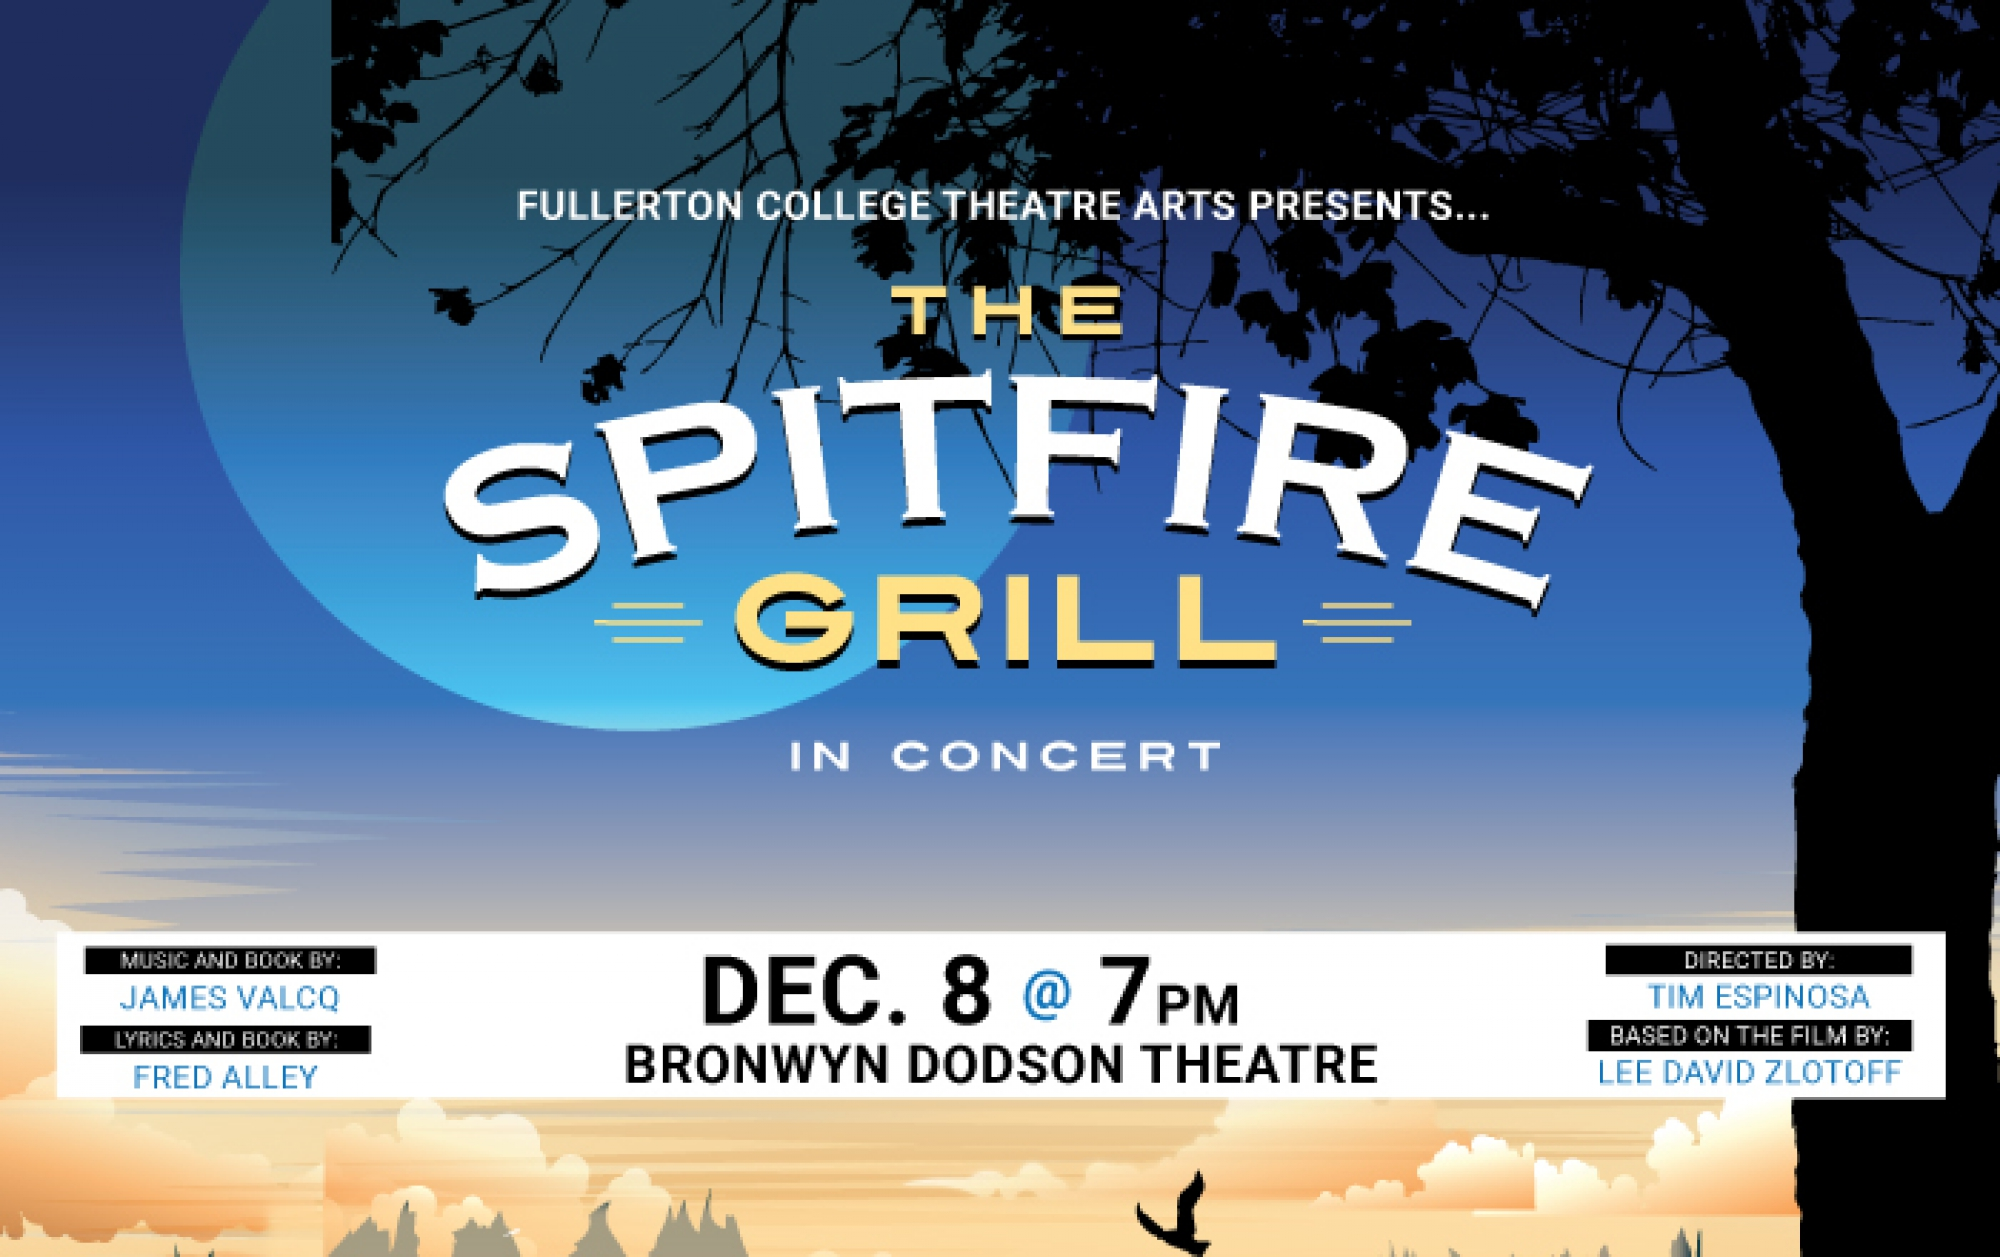 The Spitfire Grill in Concert